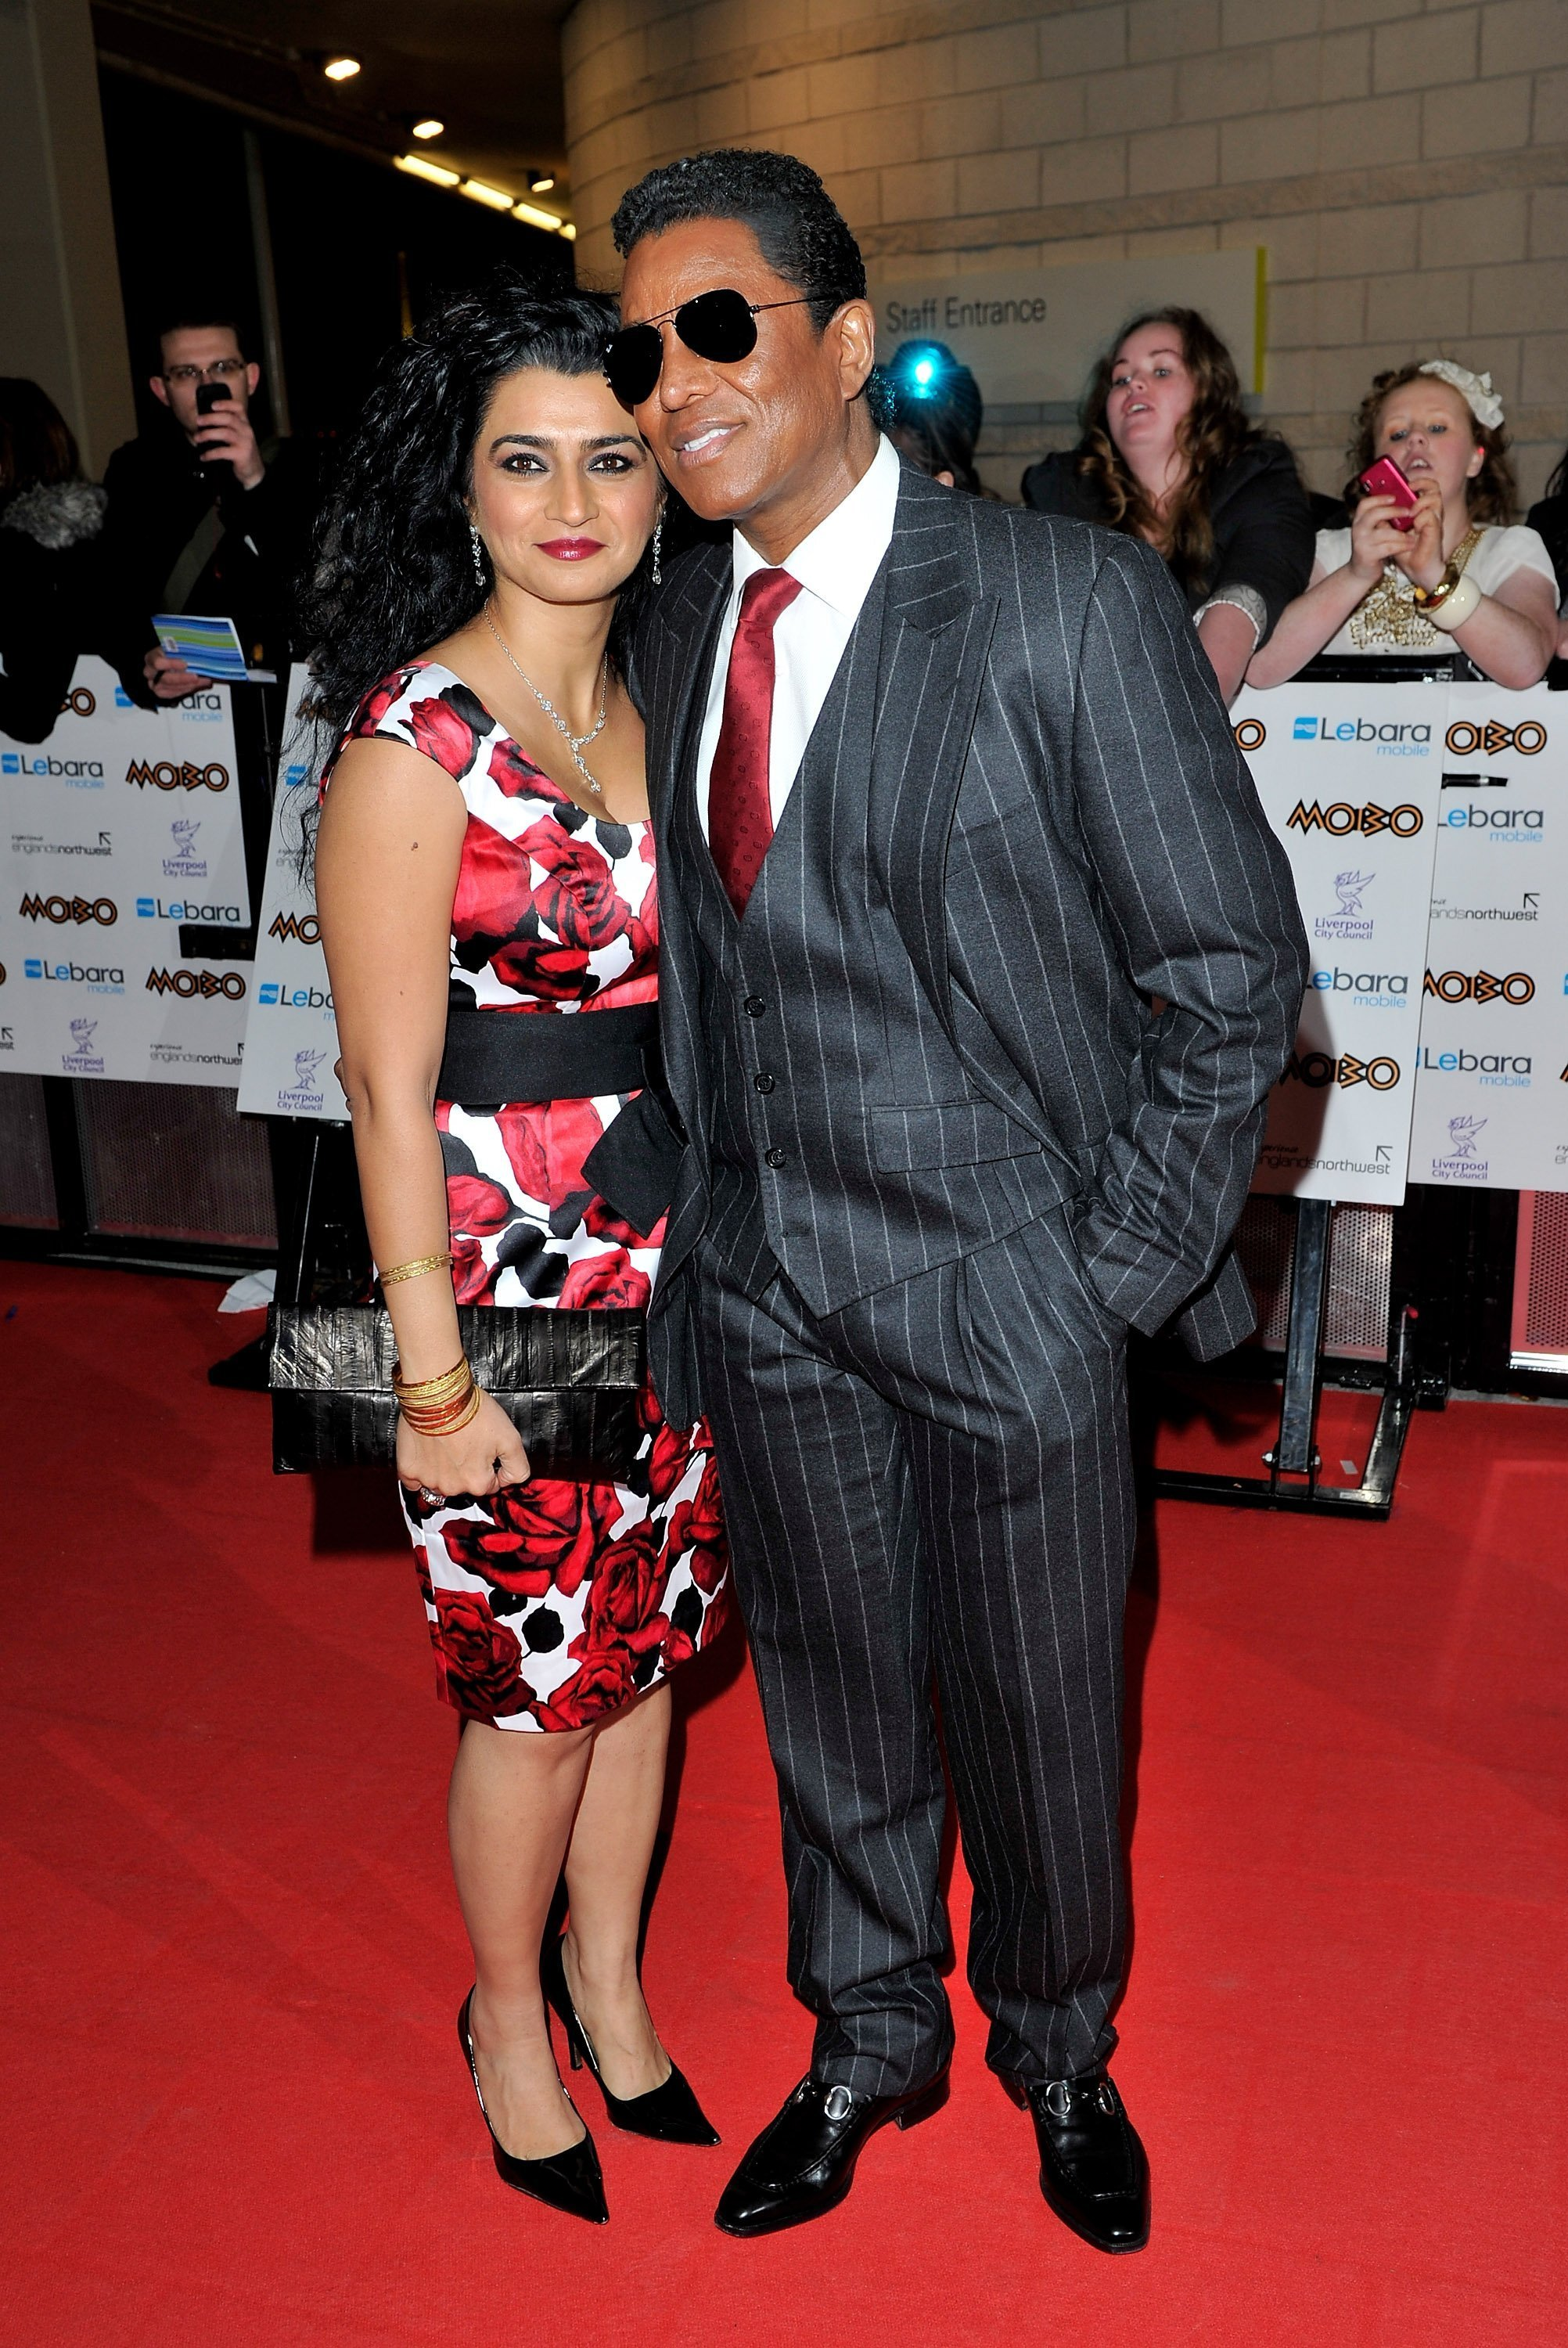 Jermaine Jackson and Hamida Rashid at the red carpet of the MOBO Awards at the Echo Arena in Liverpool, England on October 20, 2010. | Photo: Getty